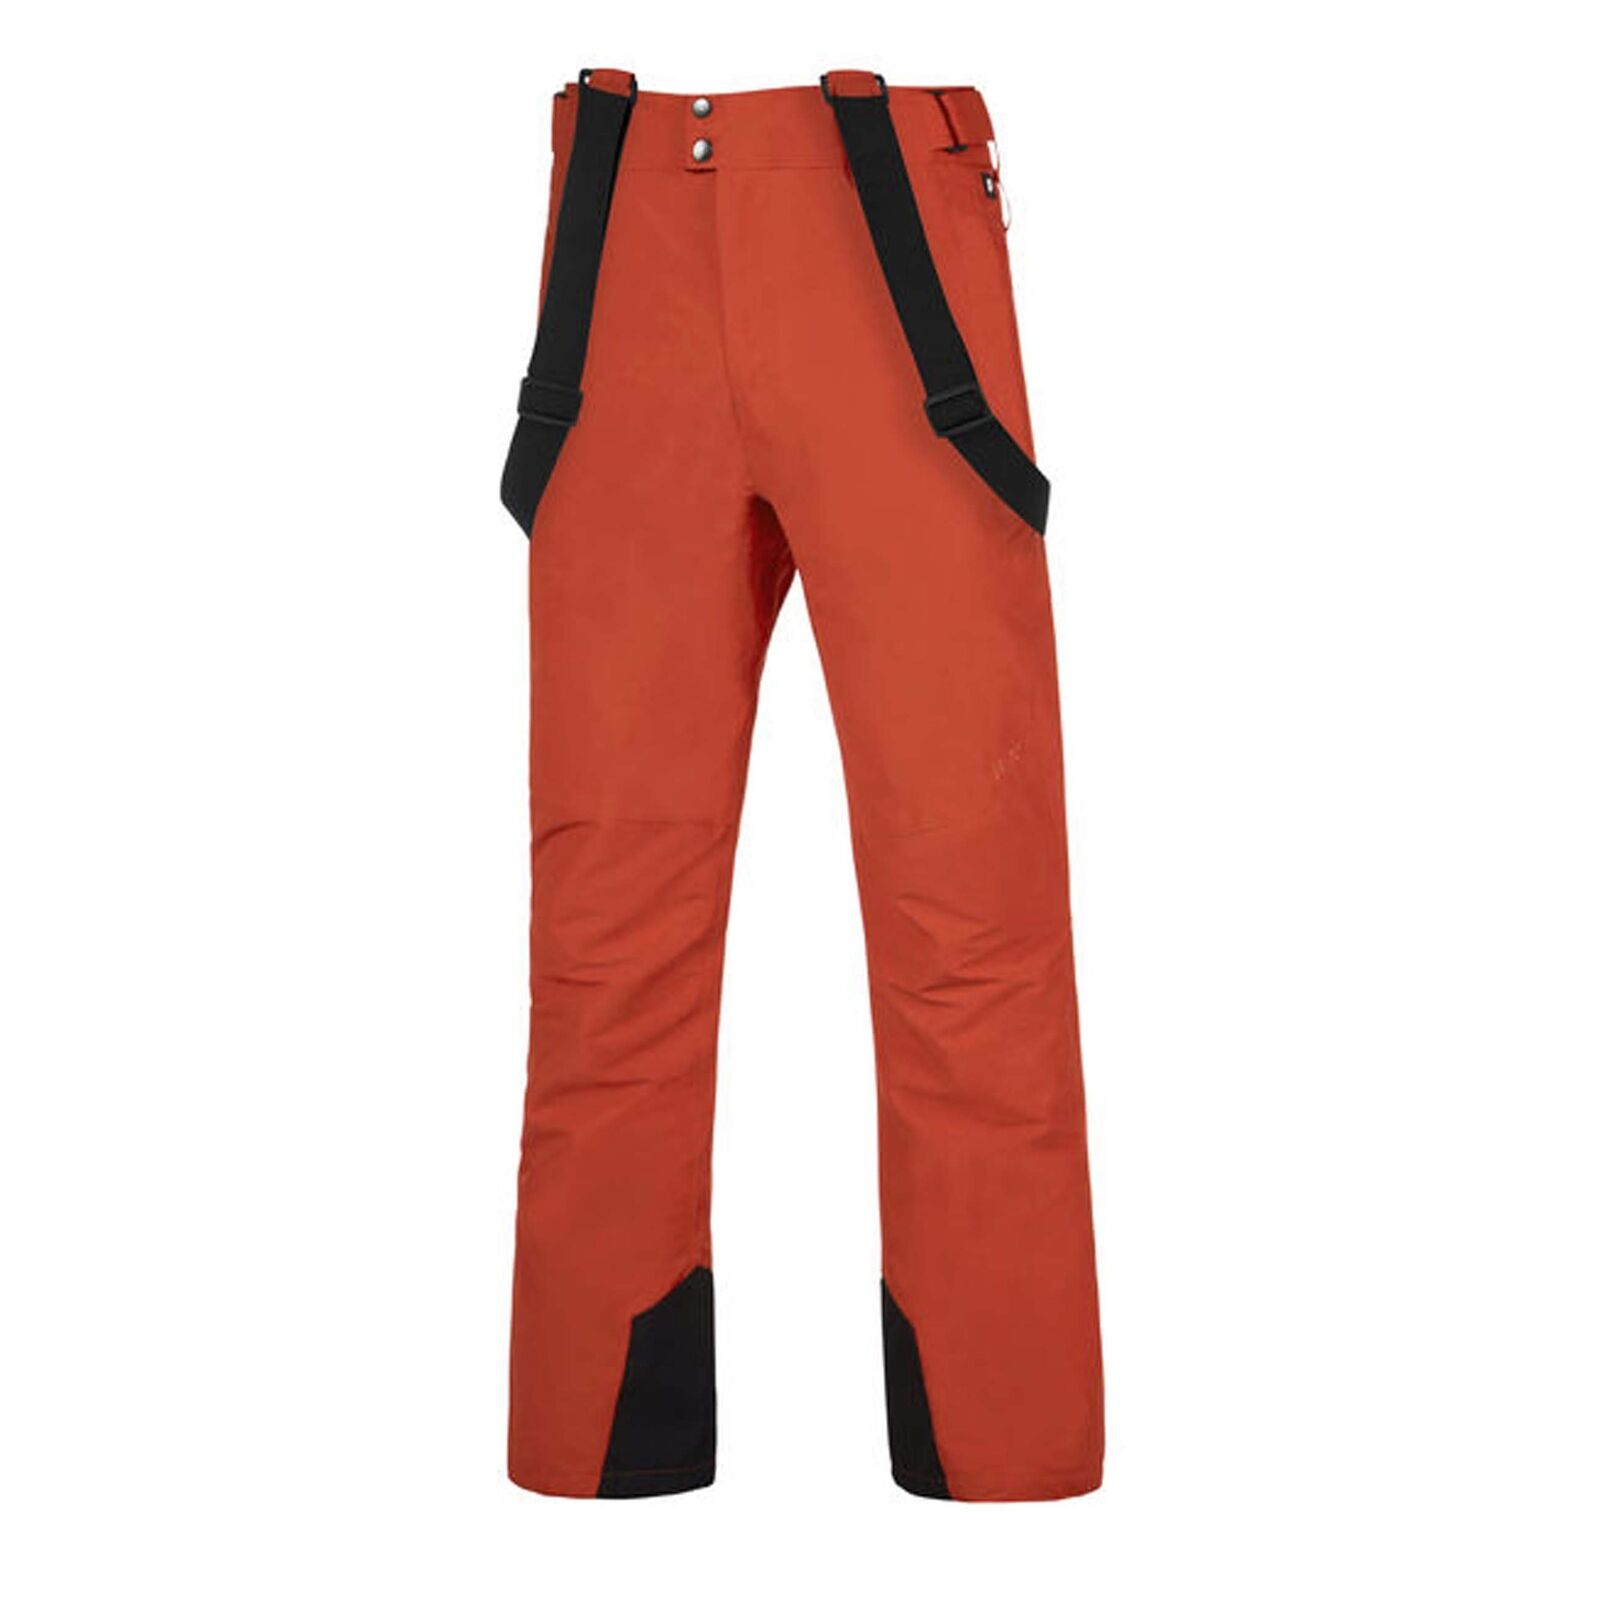 Predest Mens Oweny Ski Snowboard Snow Pants orange